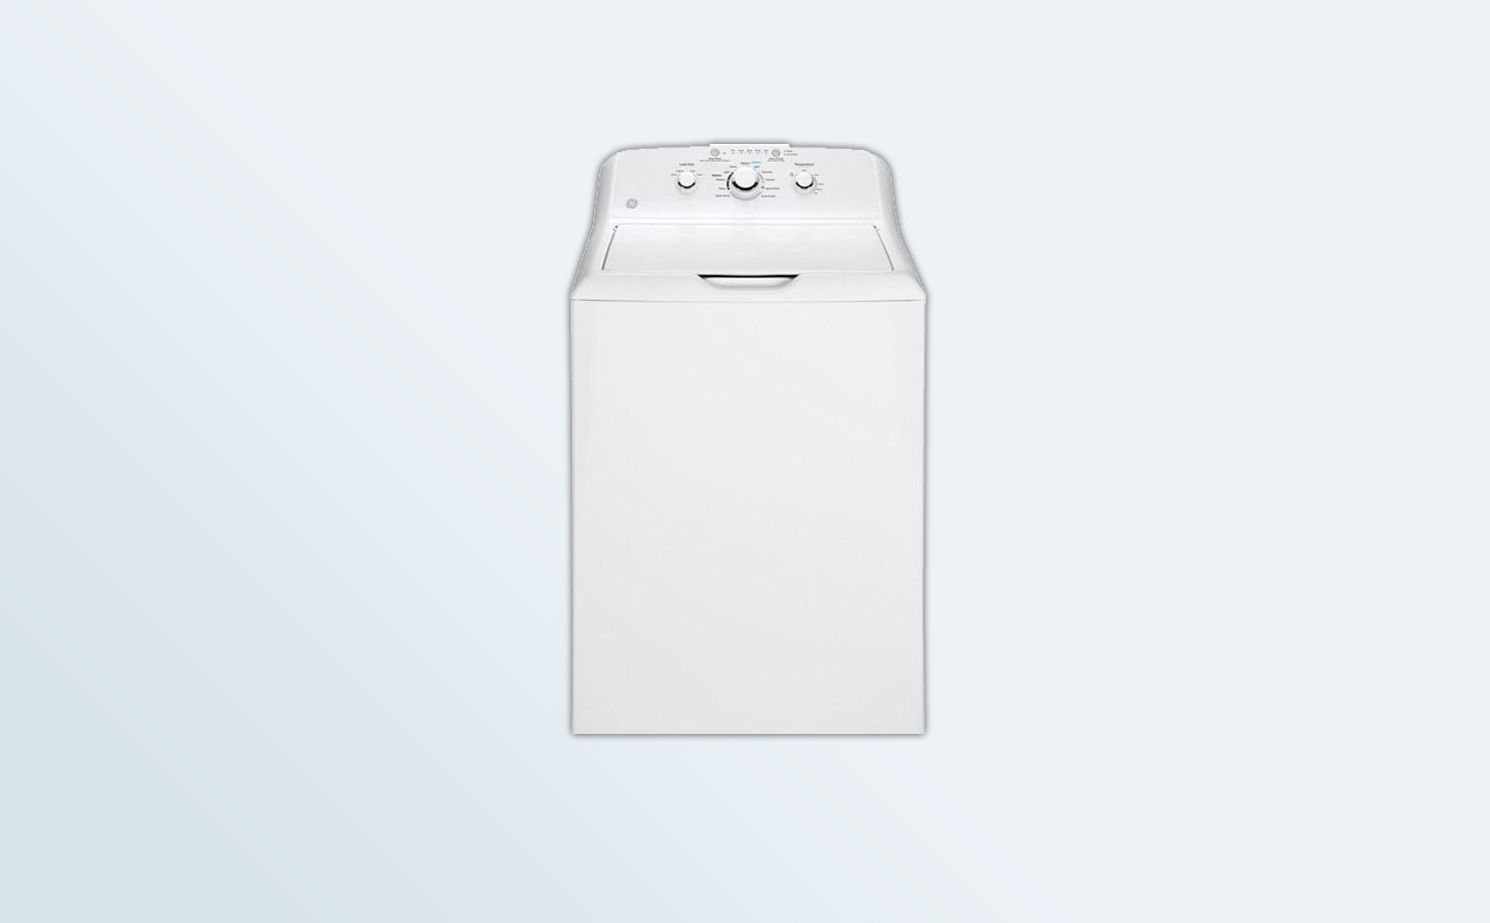 Best Top Load Washer 2019 - Top-Loading Washing Machine